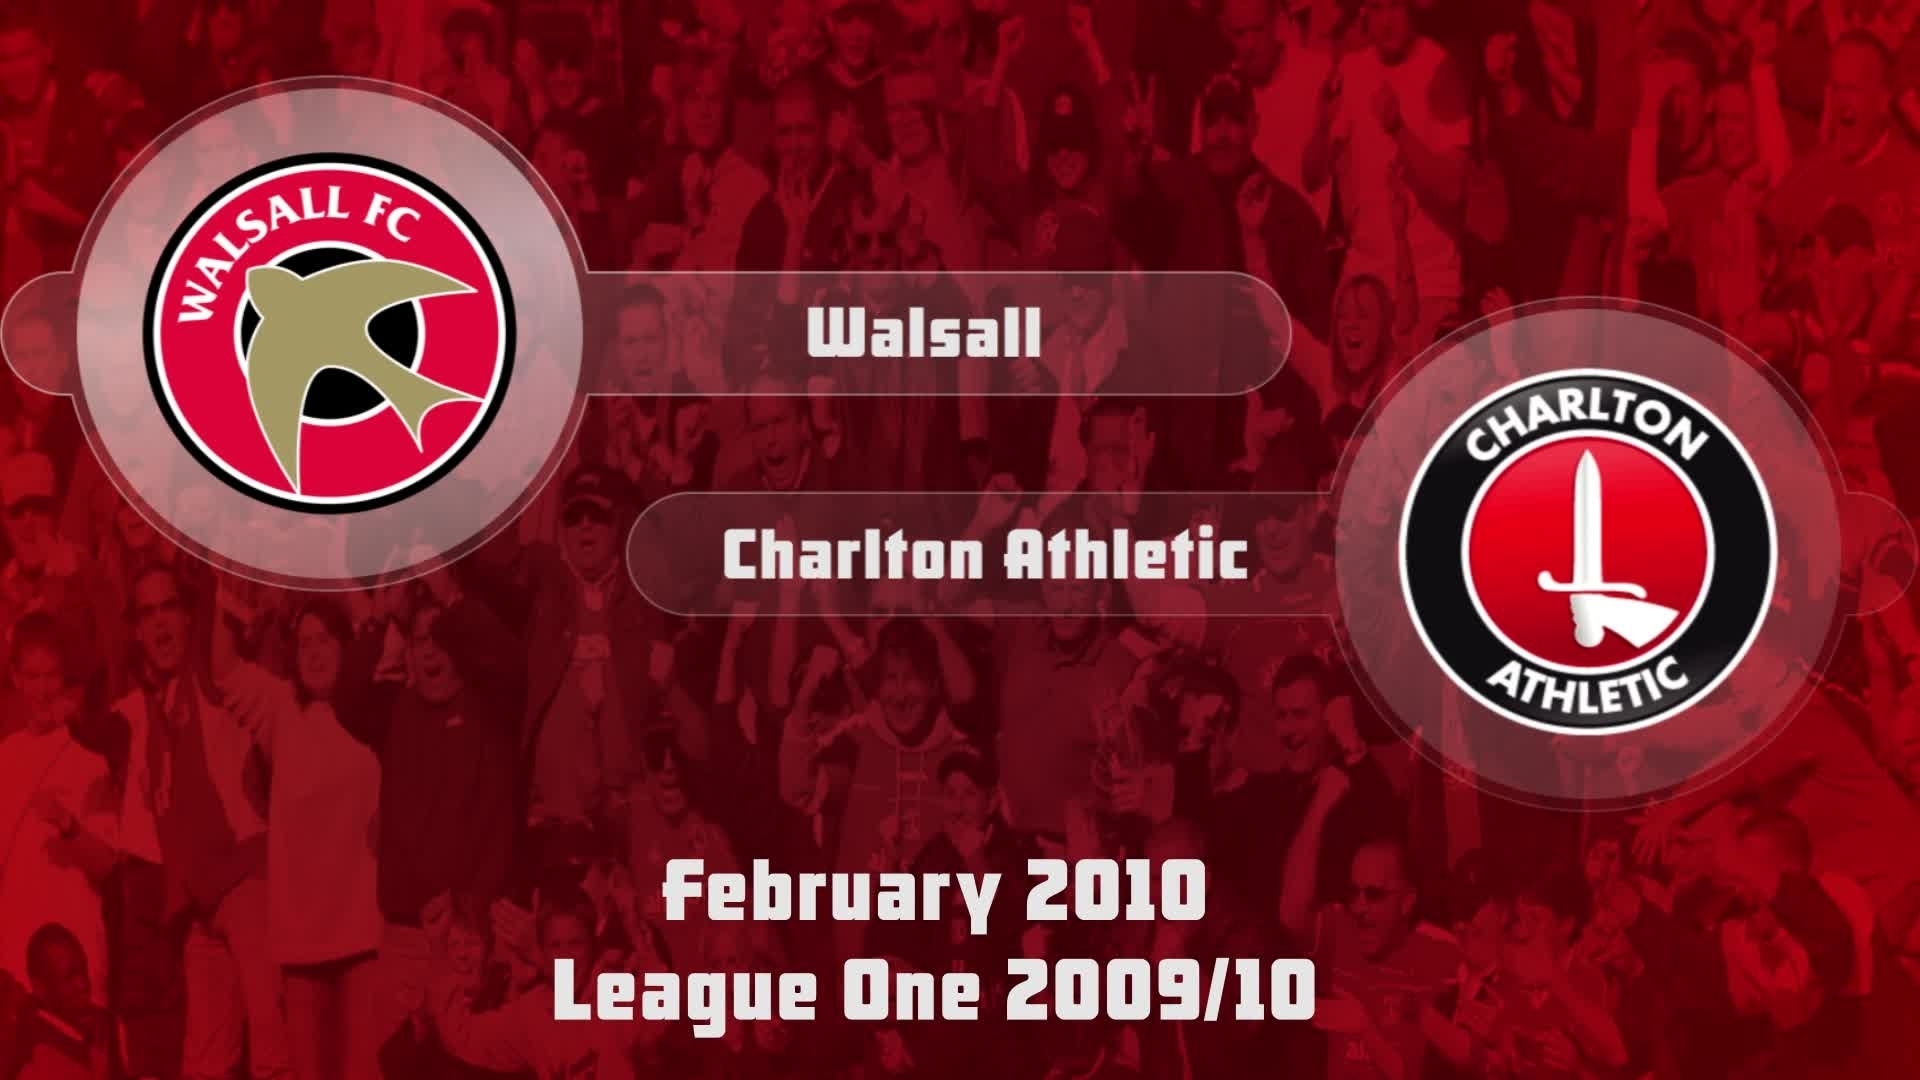 33 HIGHLIGHTS | Wallsall 1 Charlton 1 (Feb 2010)